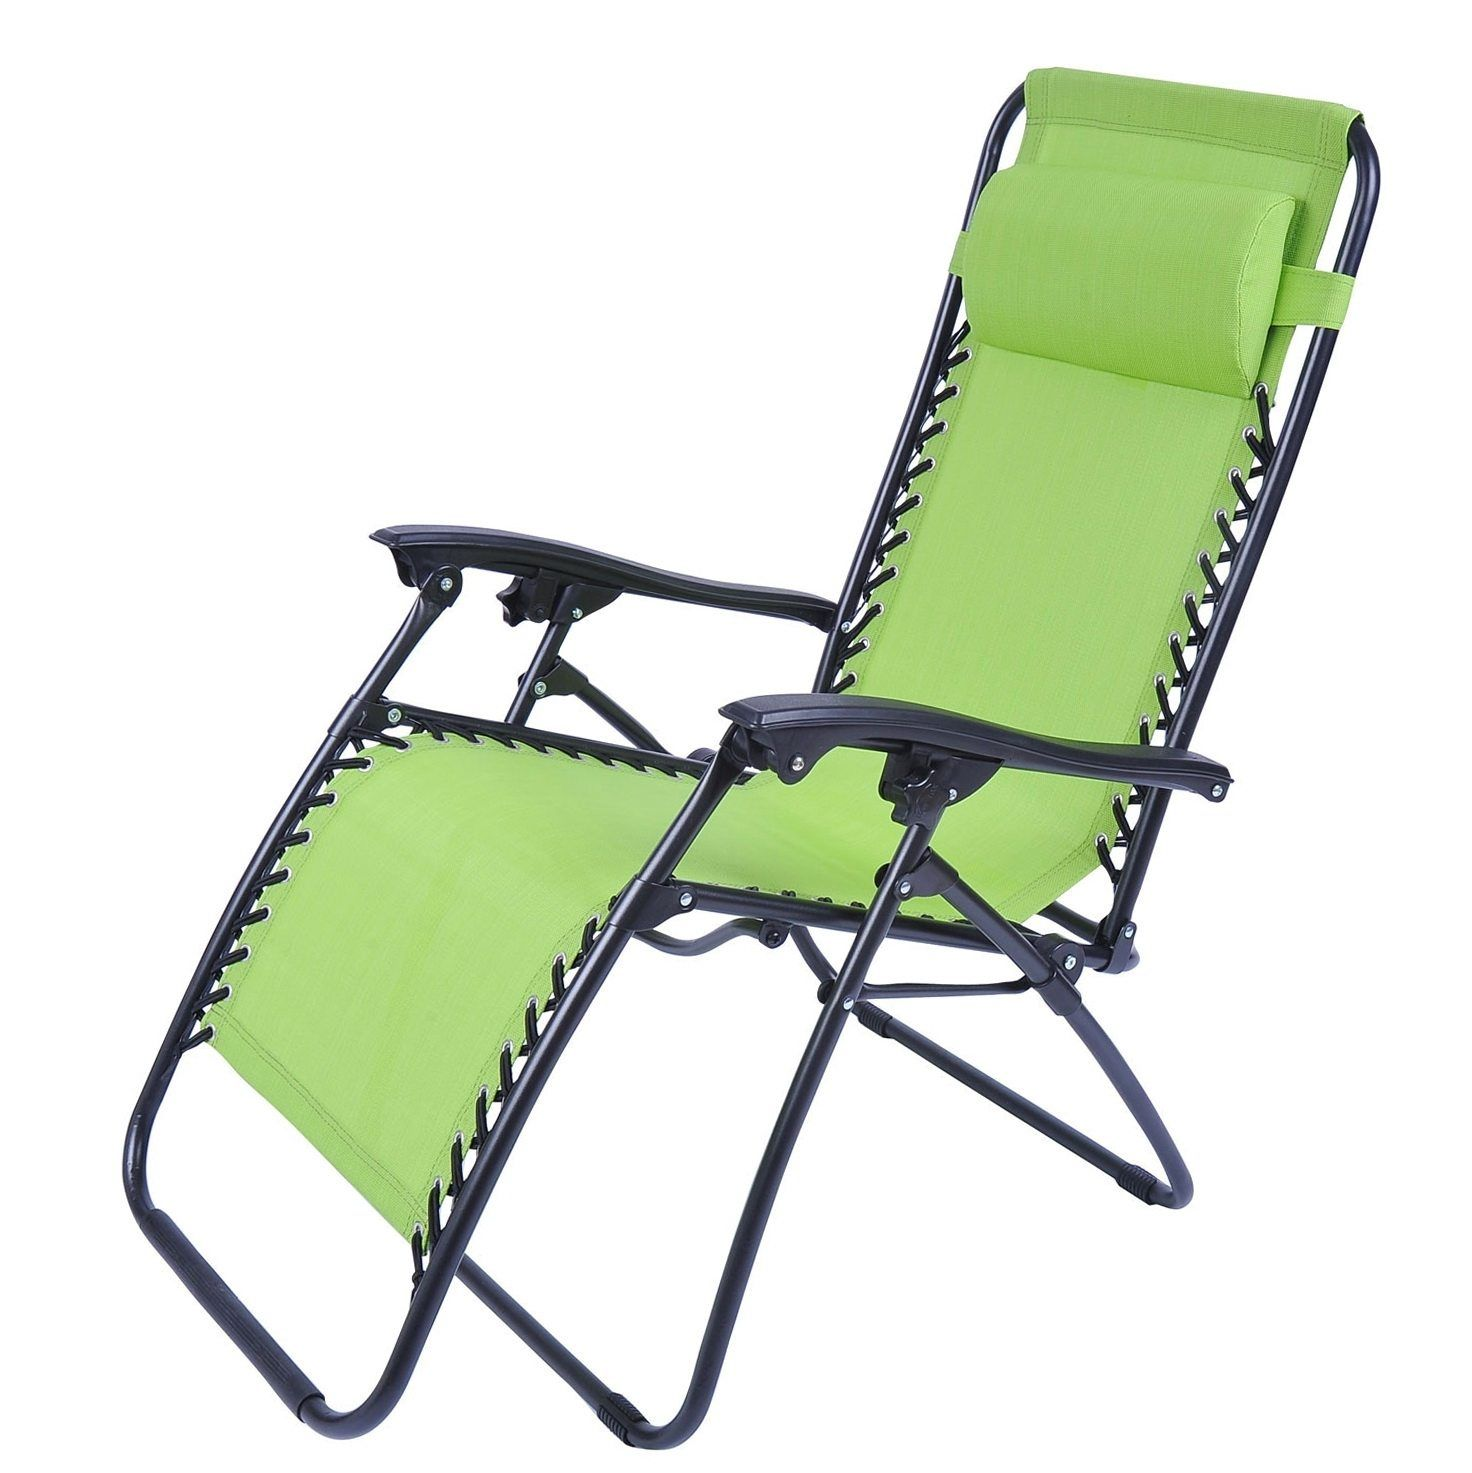 Folding Lounge Chairs Lounge Chair Outdoor Folding Folding Chaise Lounge Chair